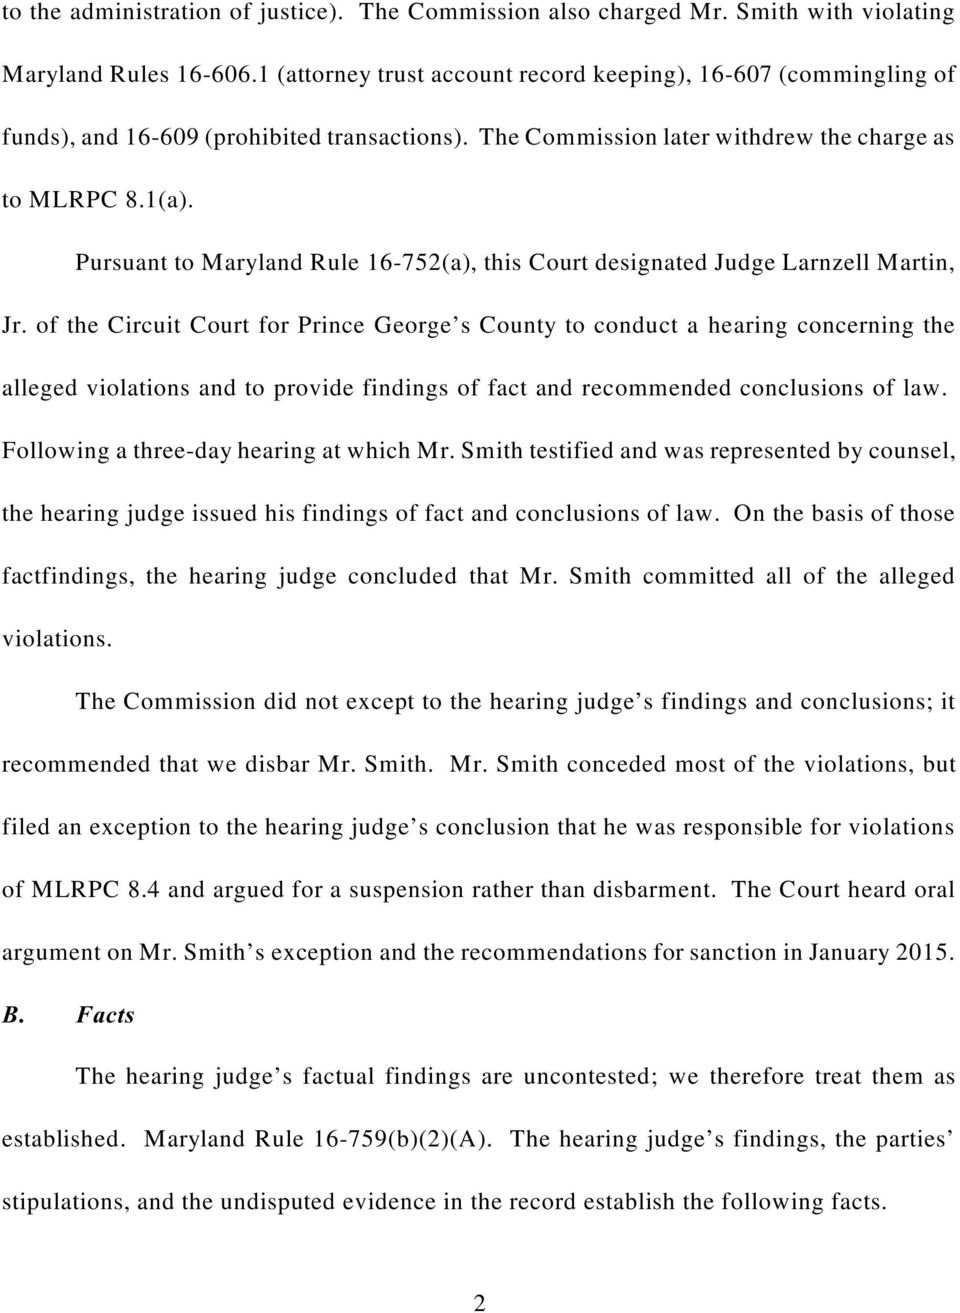 Pursuant to Maryland Rule 16-752(a), this Court designated Judge Larnzell Martin, Jr.